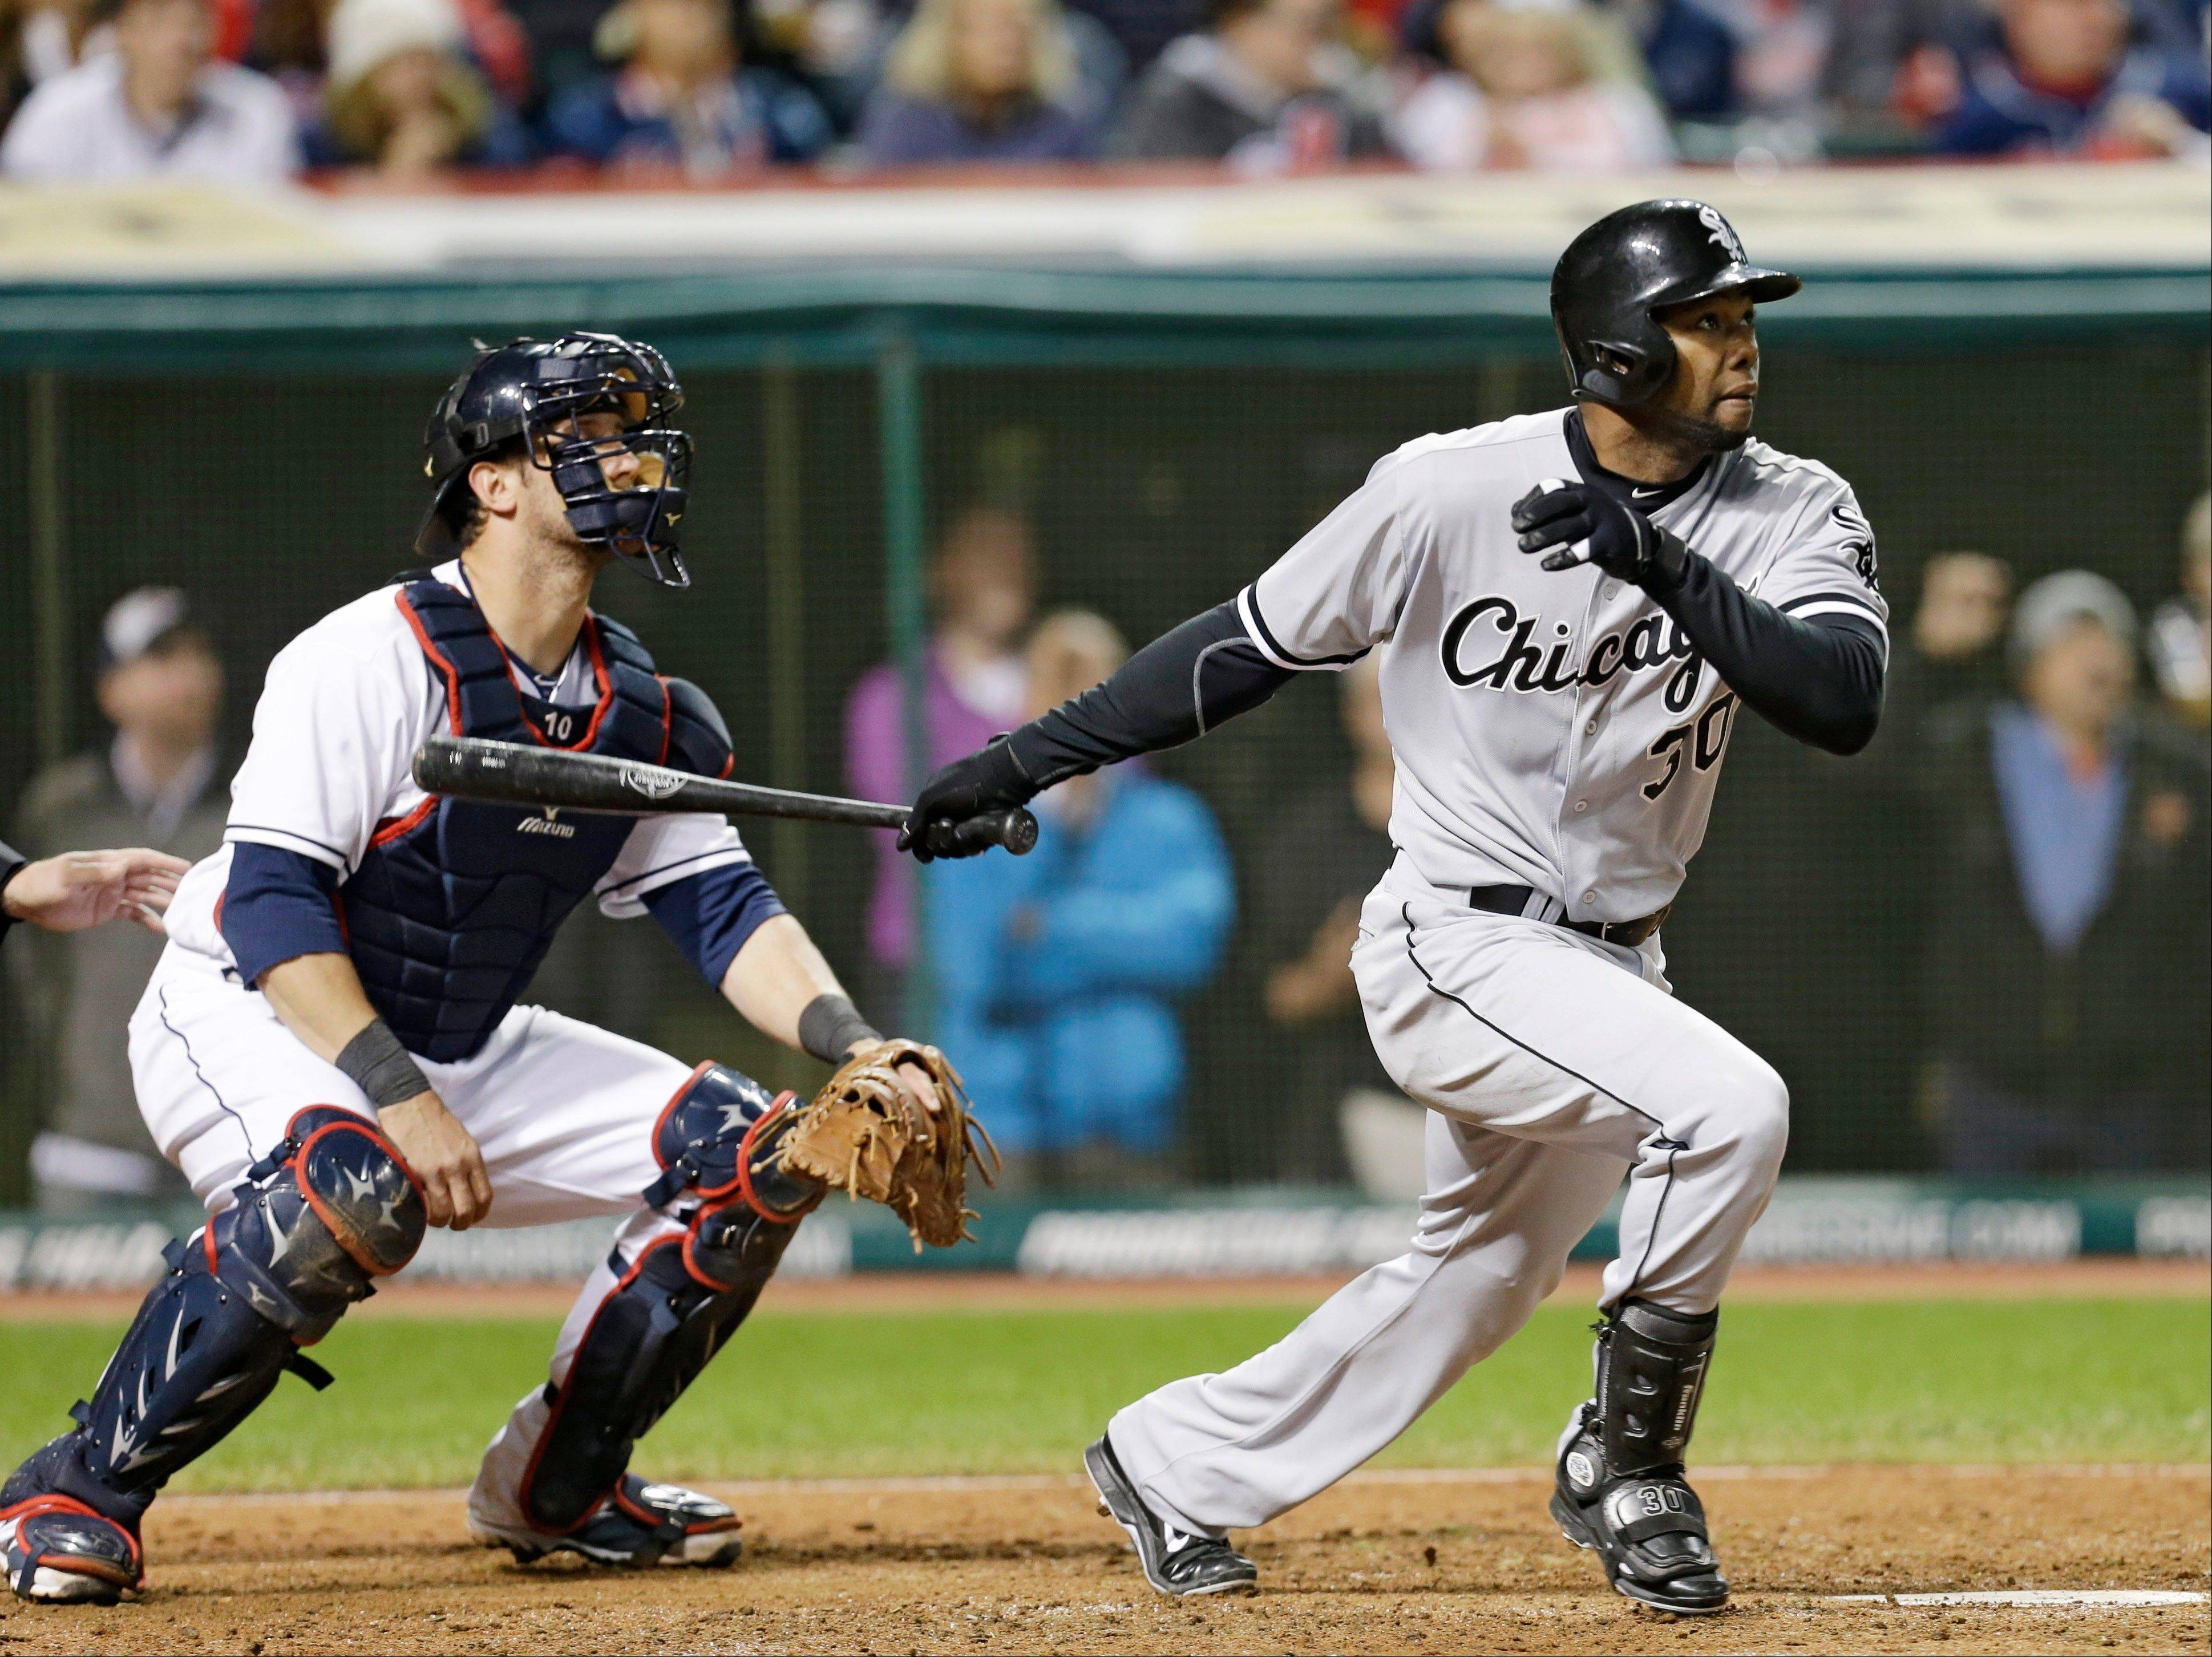 The Chicago White Sox's Alejandro De Aza hits a solo home run off Cleveland Indians relief pitcher Chris Perez in the ninth inning of a baseball game, Tuesday, Sept. 24, 2013, in Cleveland. Indians catcher Yan Gomes watches.